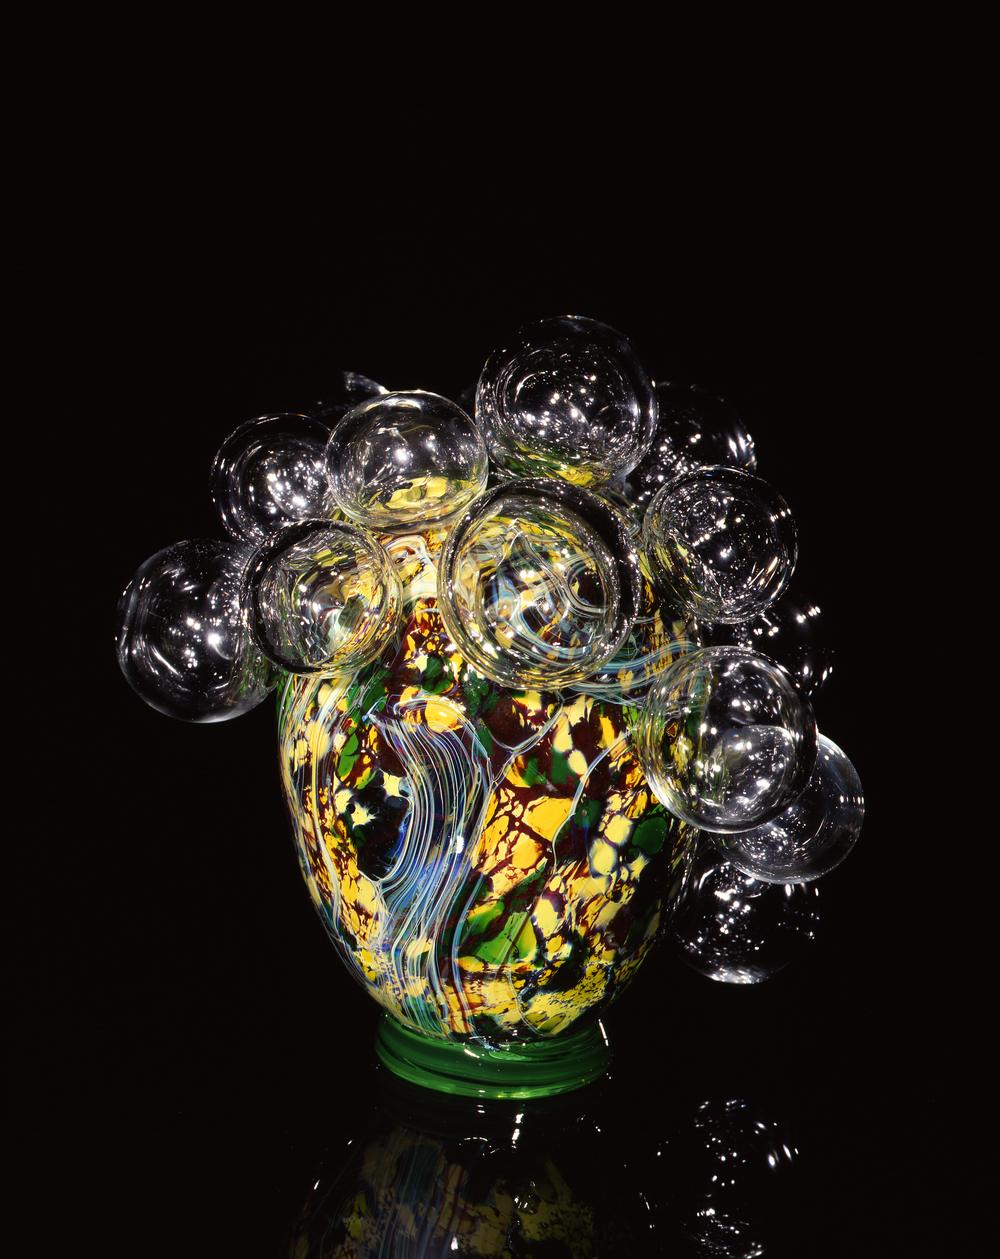 Dale Chihuly,  Moss Green Spotted Piccolo Venetian with Clear Spheres  (1997, glass, 8 x 8 x 9 inches)